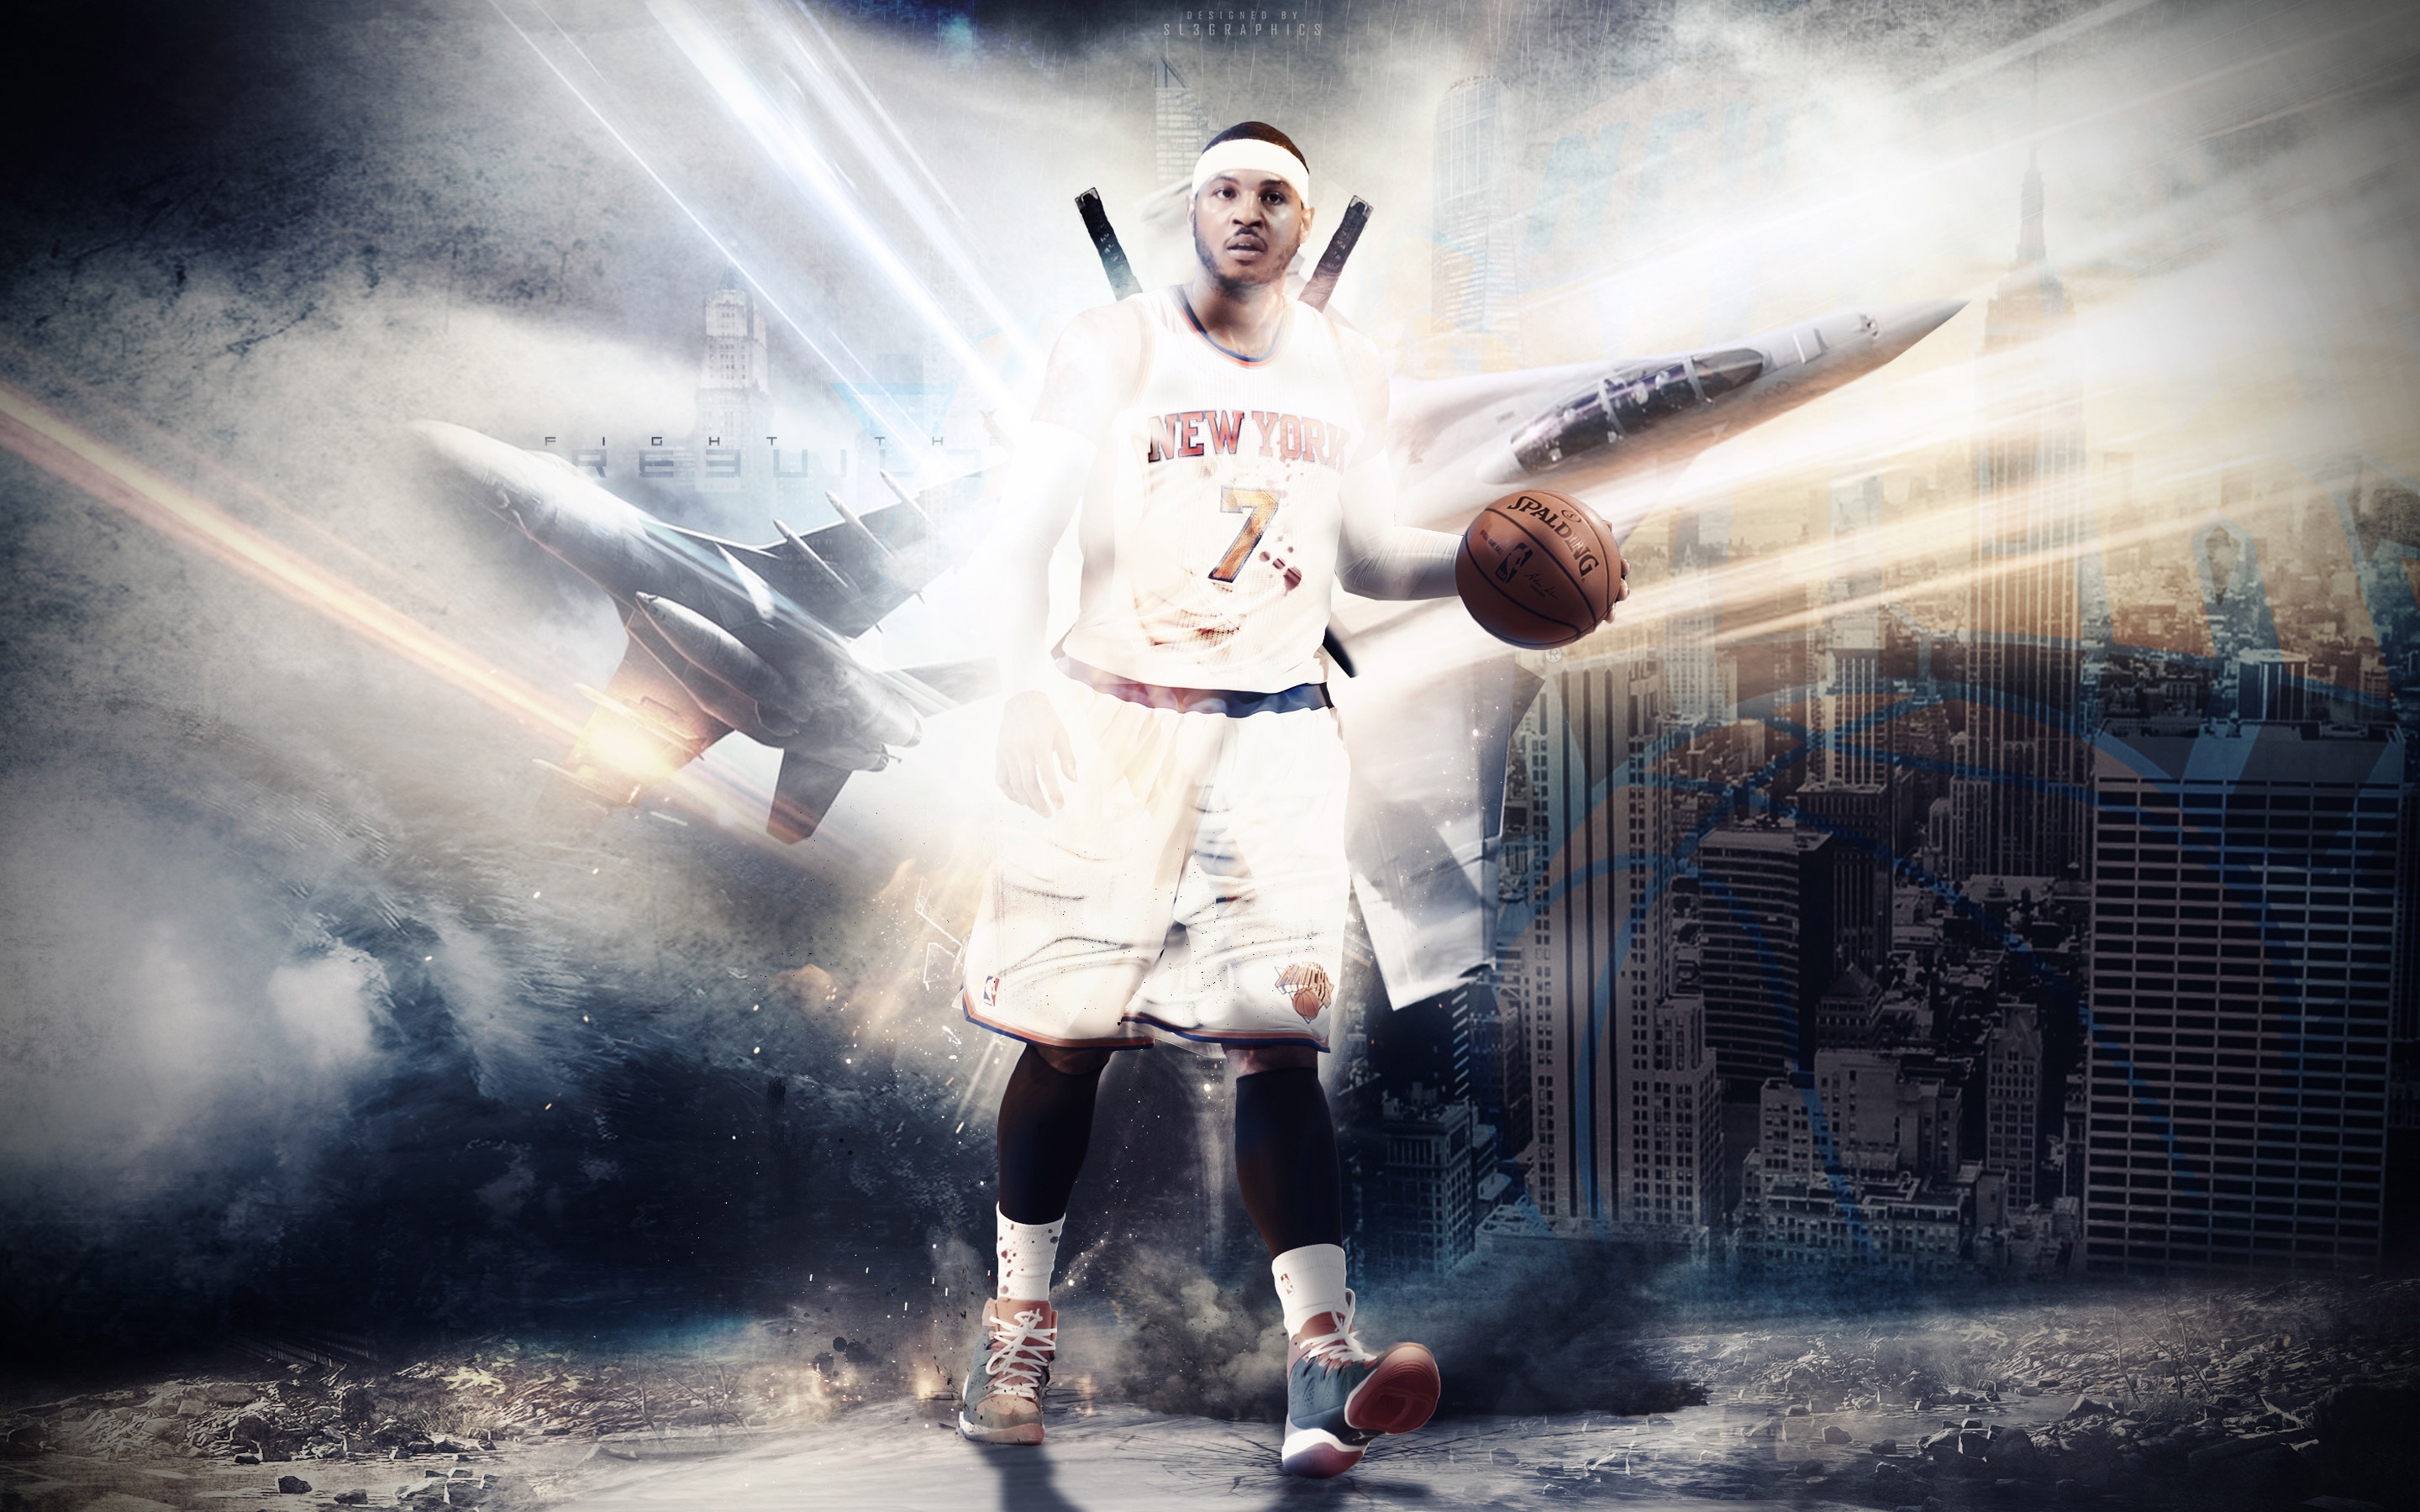 Melo NY Knicks 2015 Wallpaper